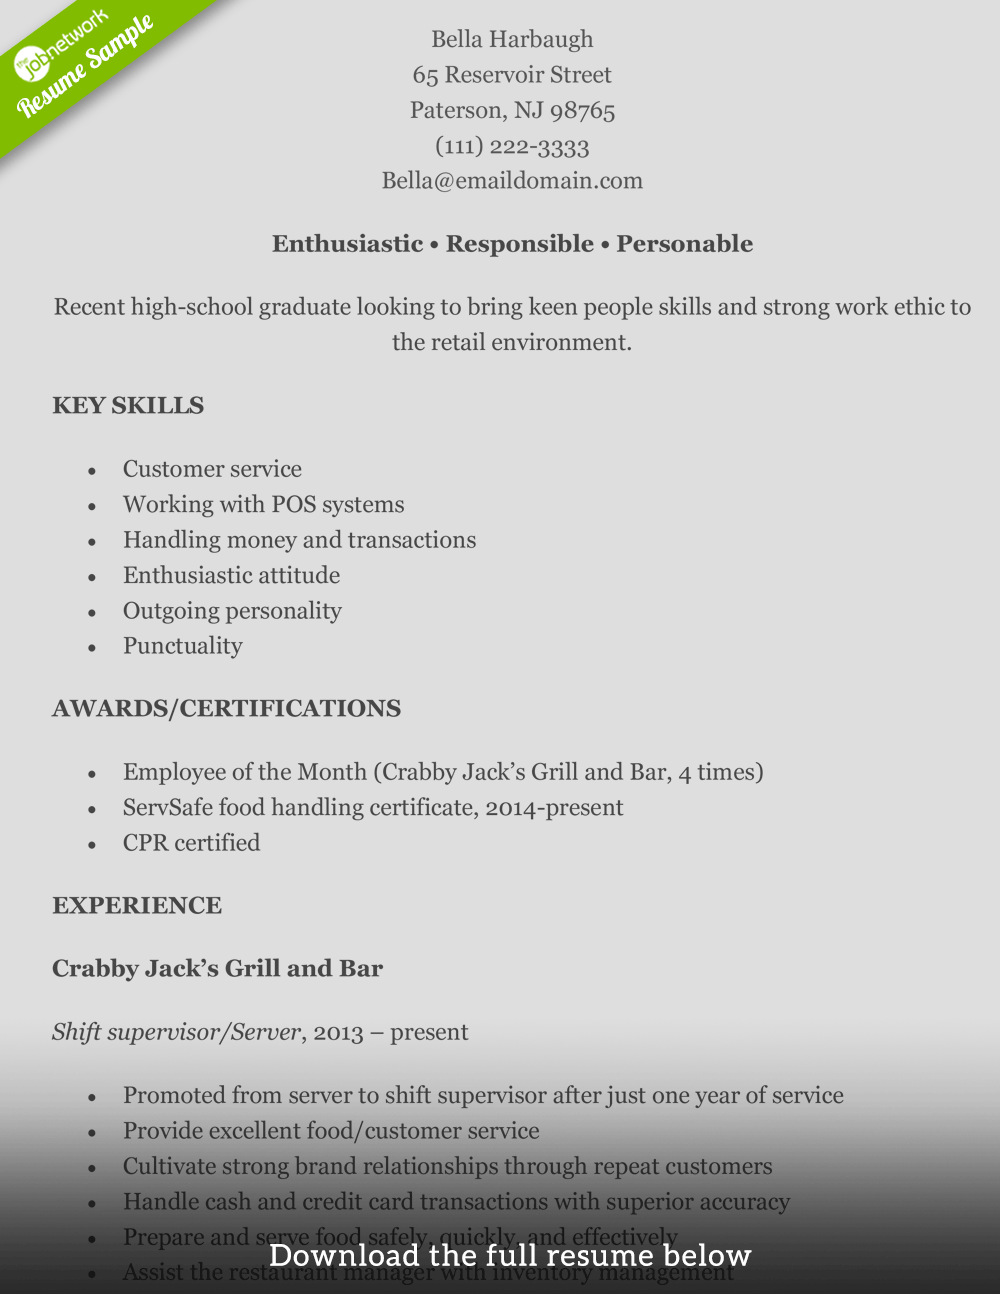 Sample Key Skills For Resume How To Write A Perfect Retail Resume Examples Included